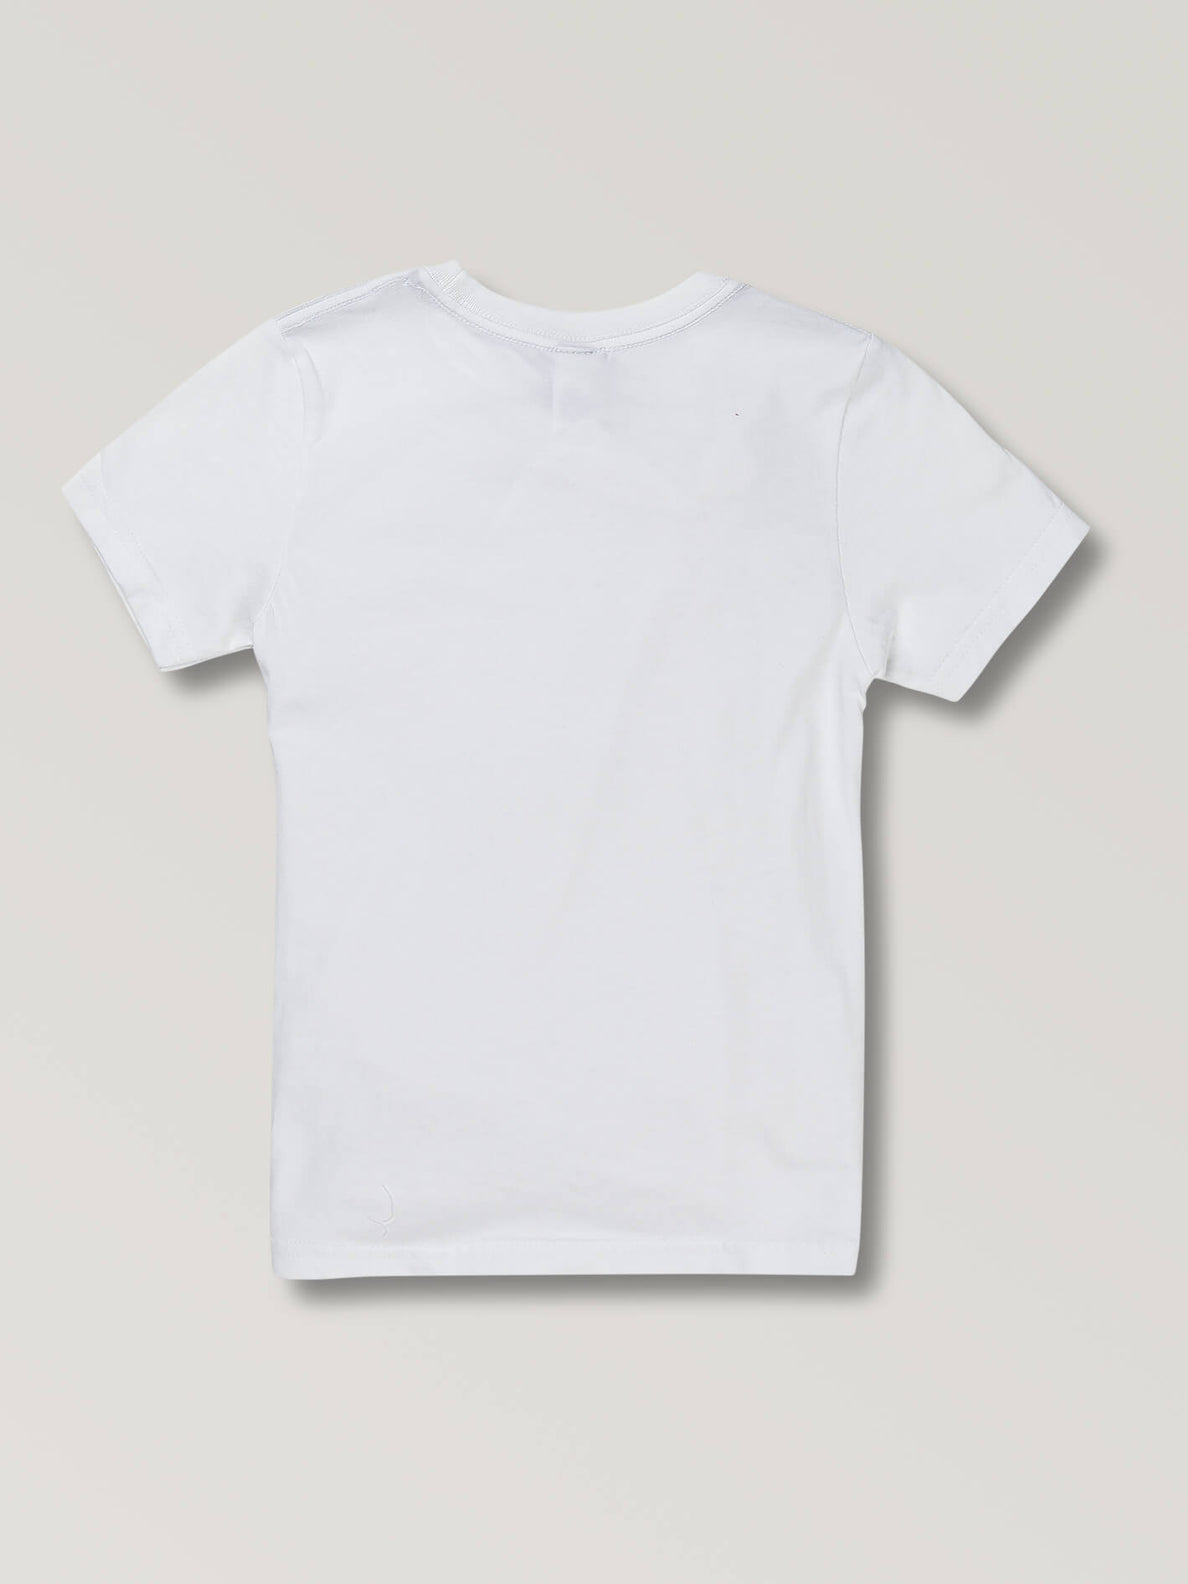 Little Boys Europencil Tee In White, Back View